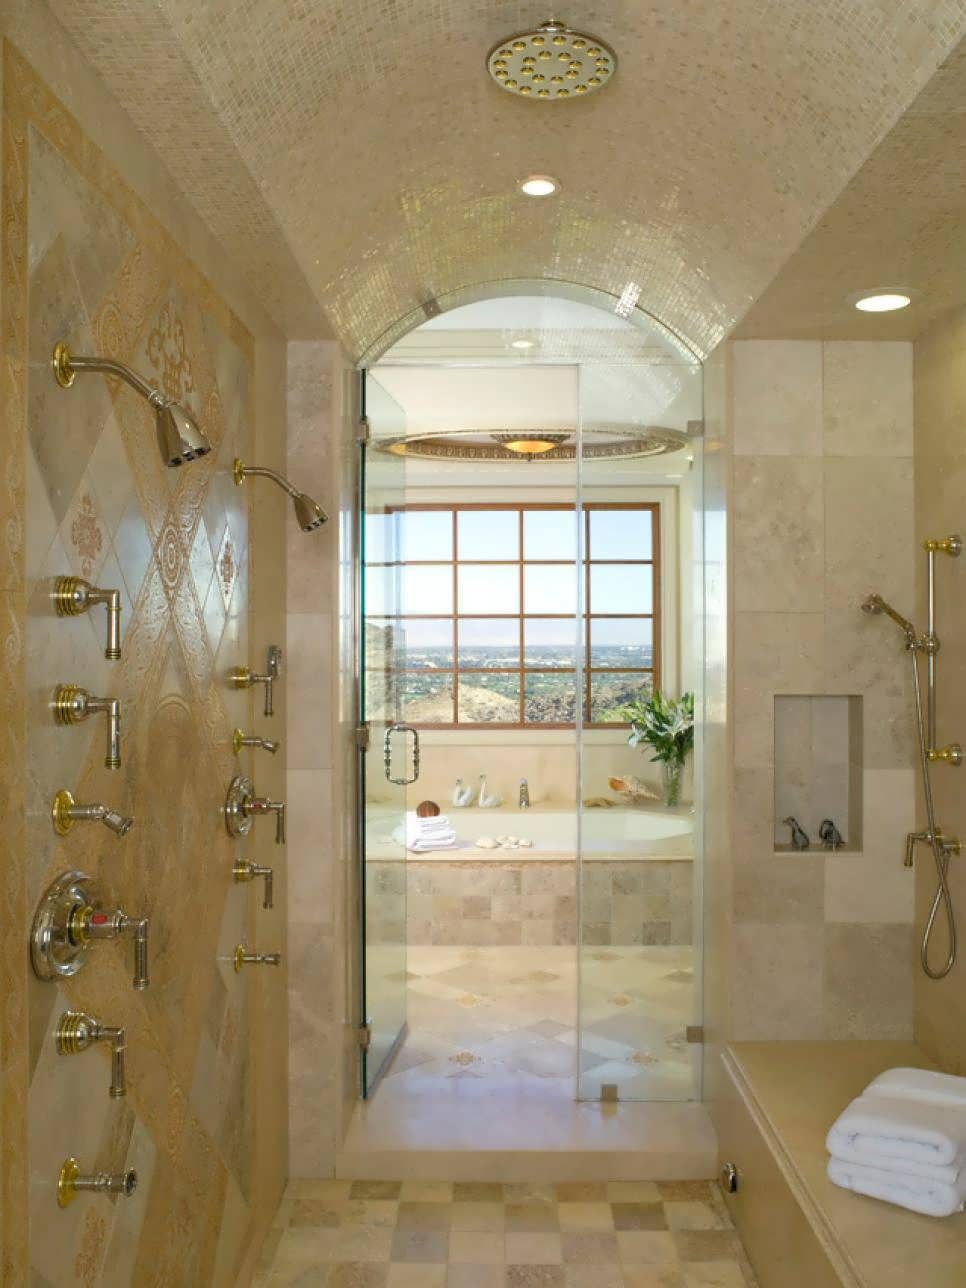 Bathroomhow Much To Remodel A Small Bathroom What Does A Bathroom Custom Cost Of Remodeling A Small Bathroom Inspiration Design